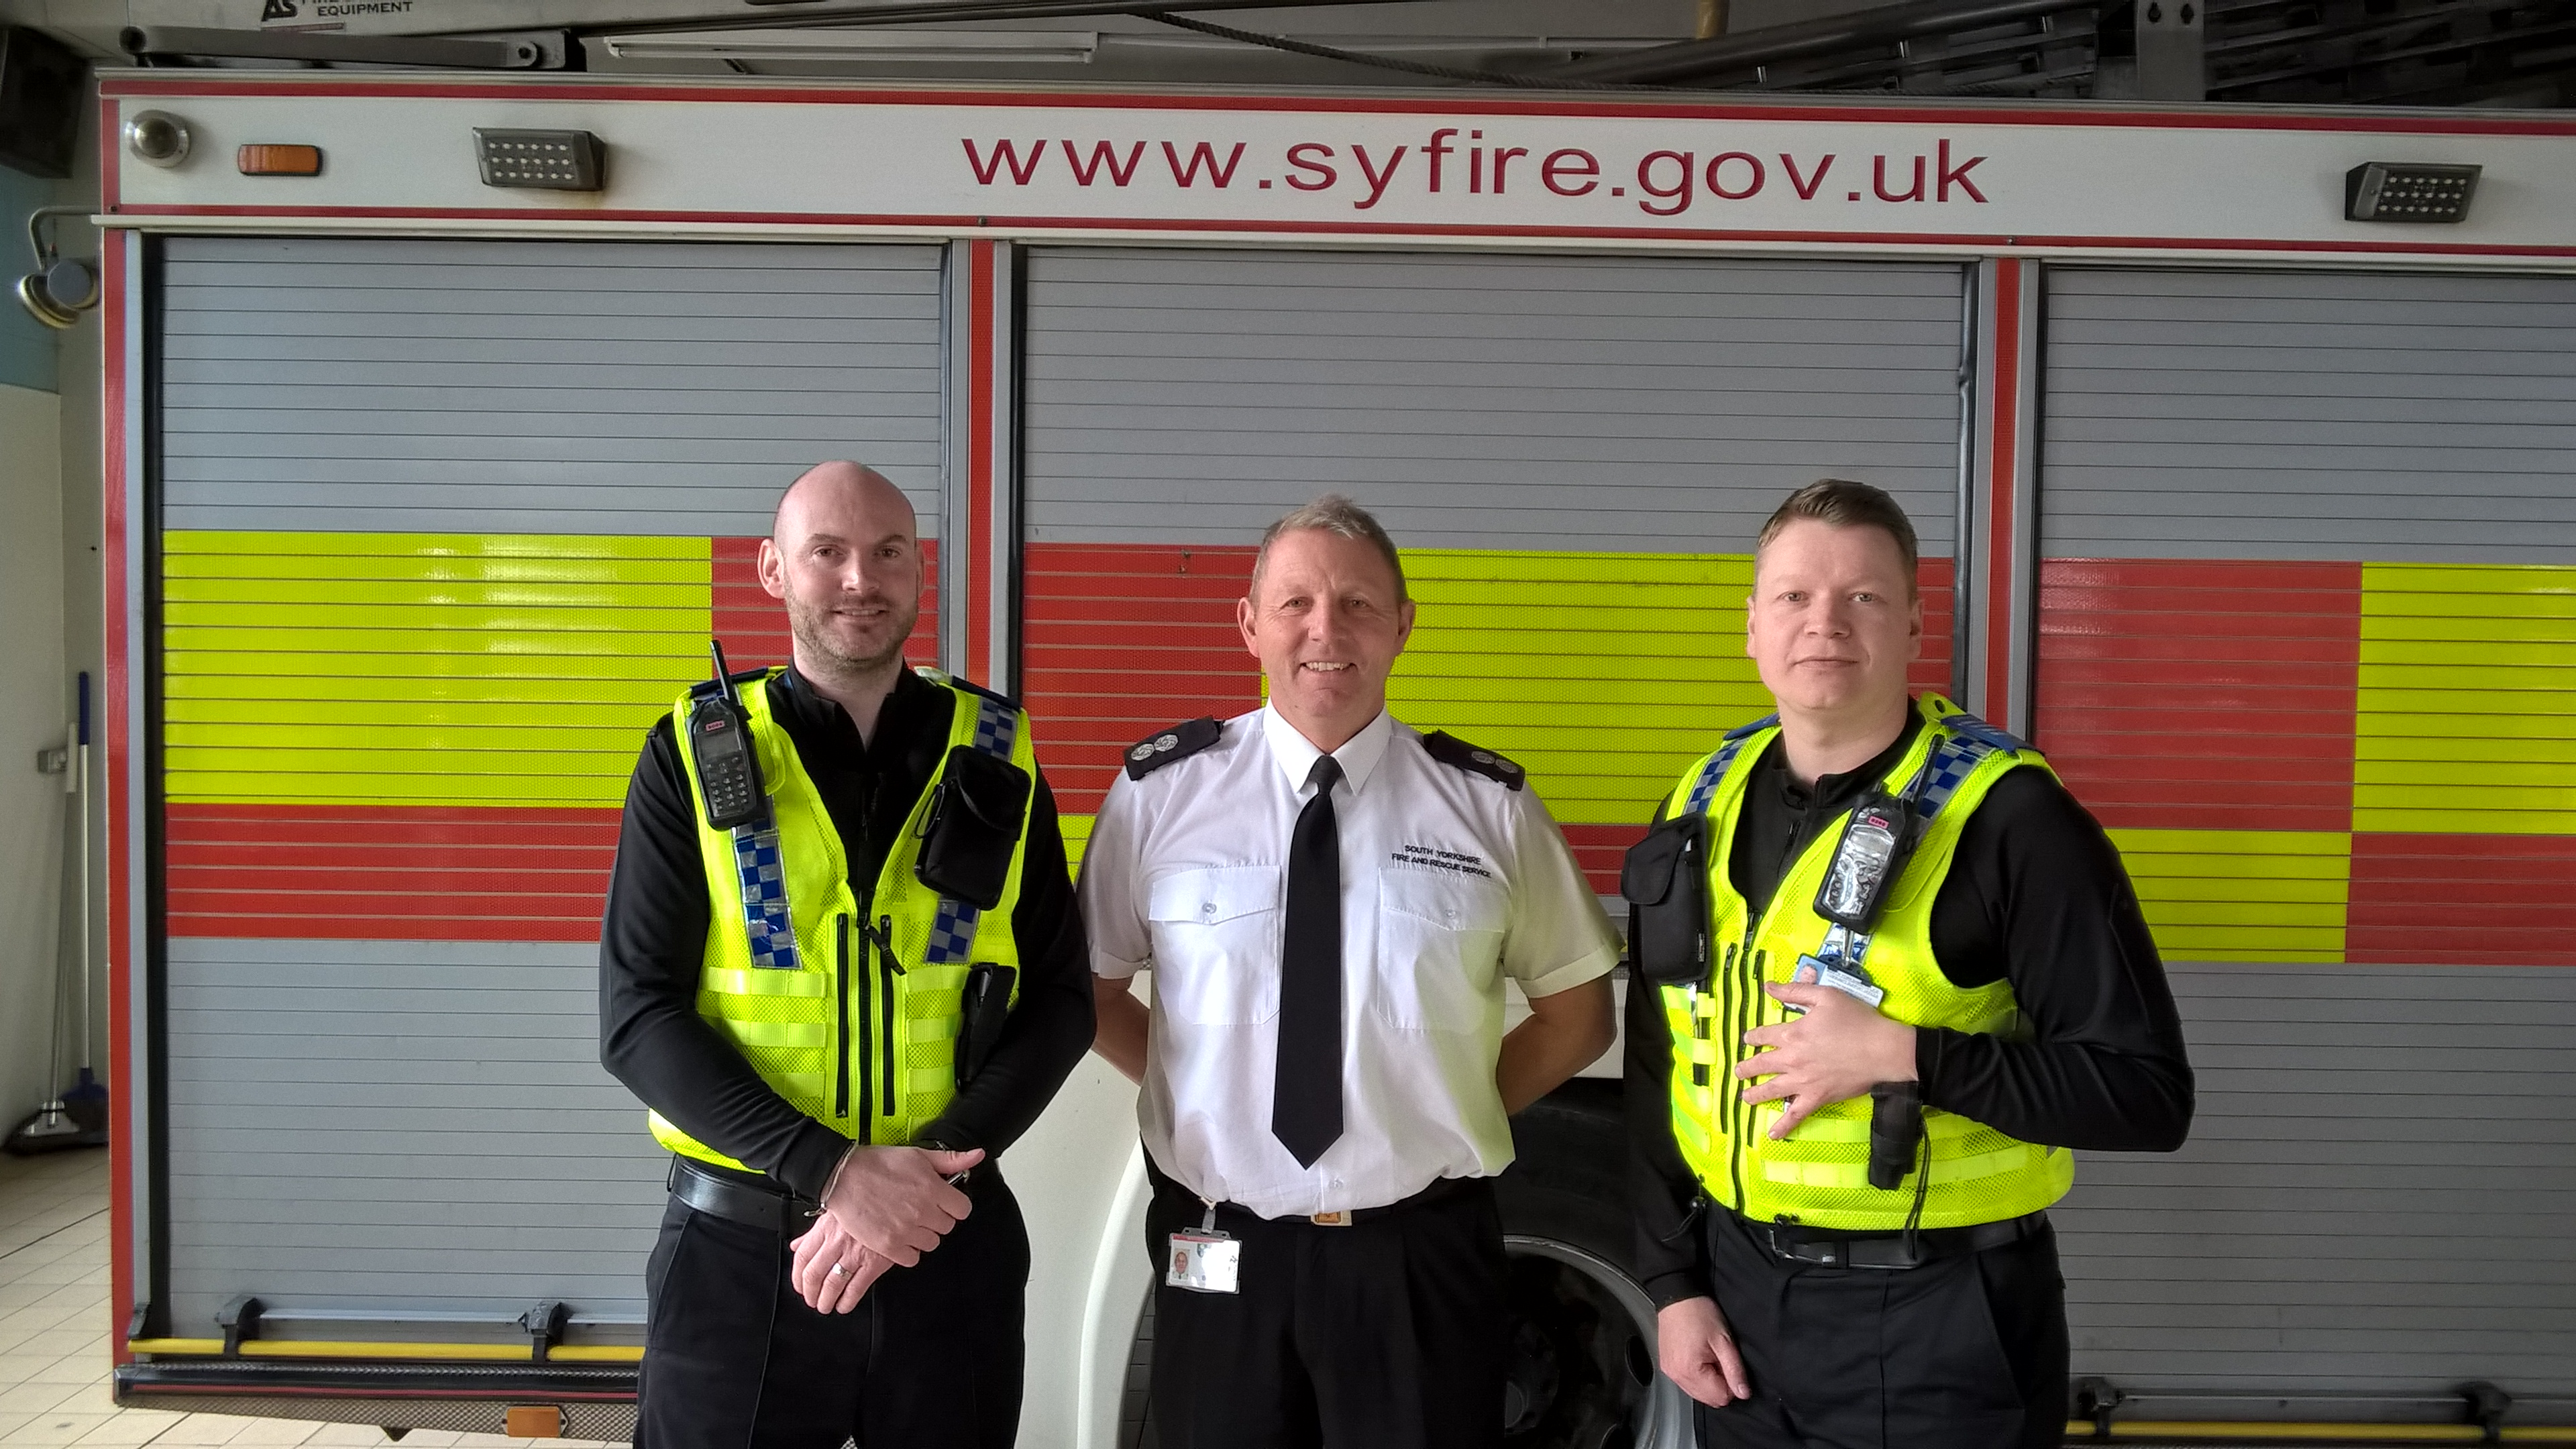 Pictured L-R:  PCSO Jonathan Bentley, South Yorkshire Fire and Rescue Watch Manager Simon Brookes and PCSO Peter Robinson.